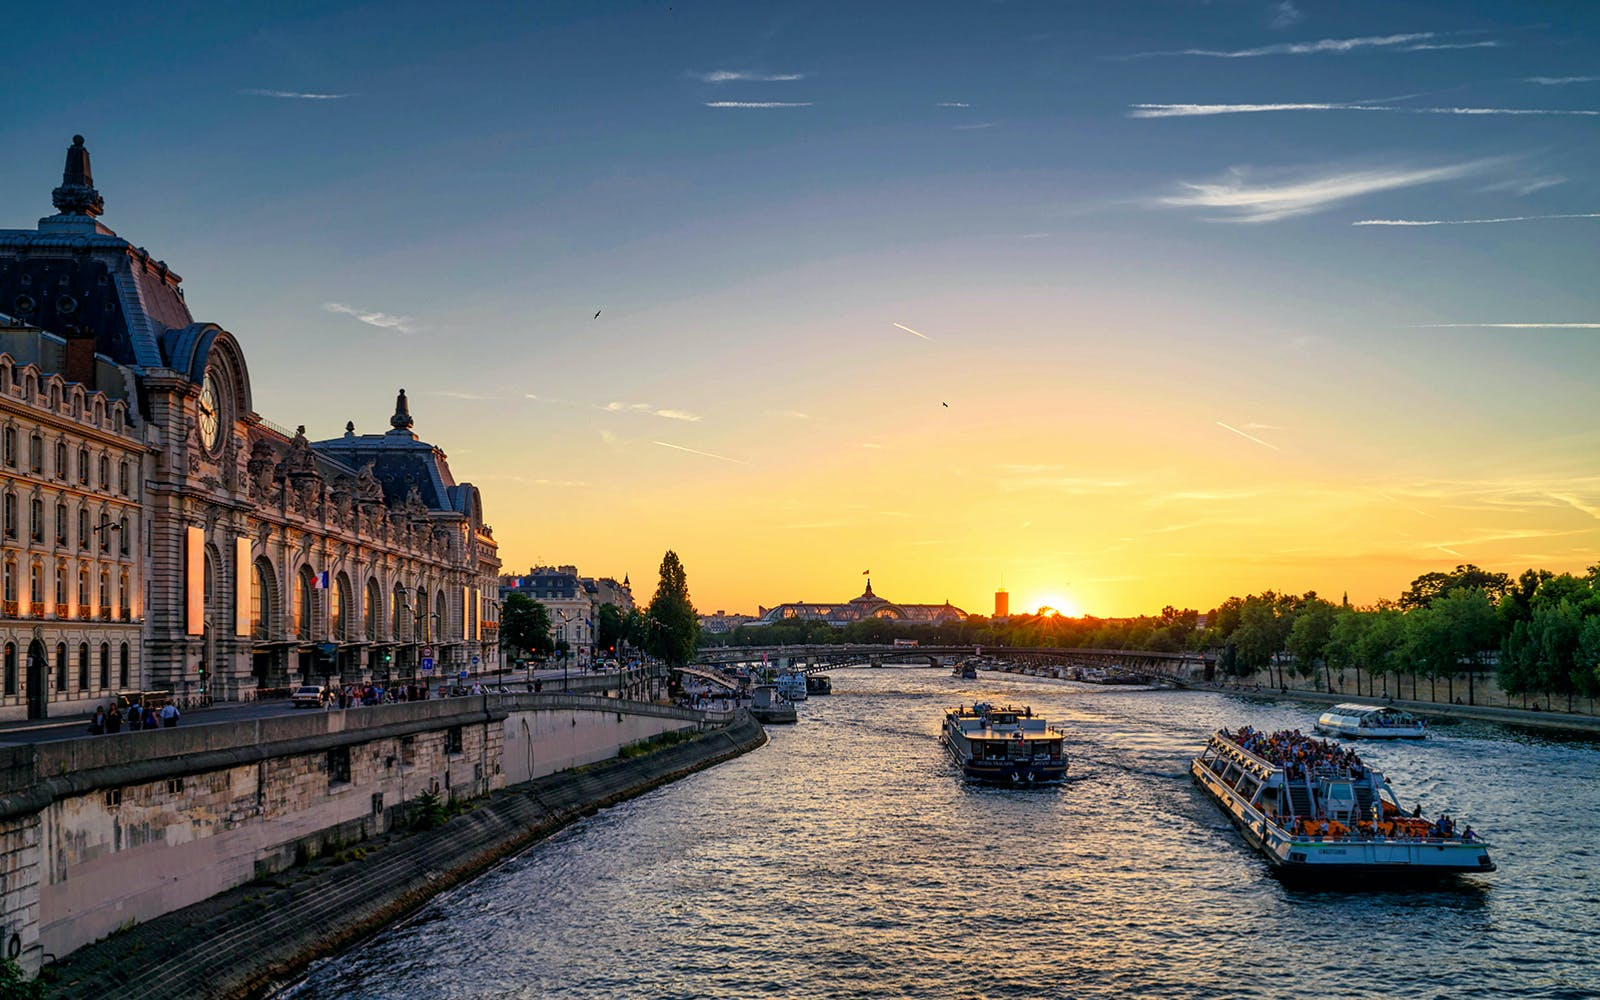 Bateaux Mouches Early Evening Seine River Dinner Cruise With Live Music